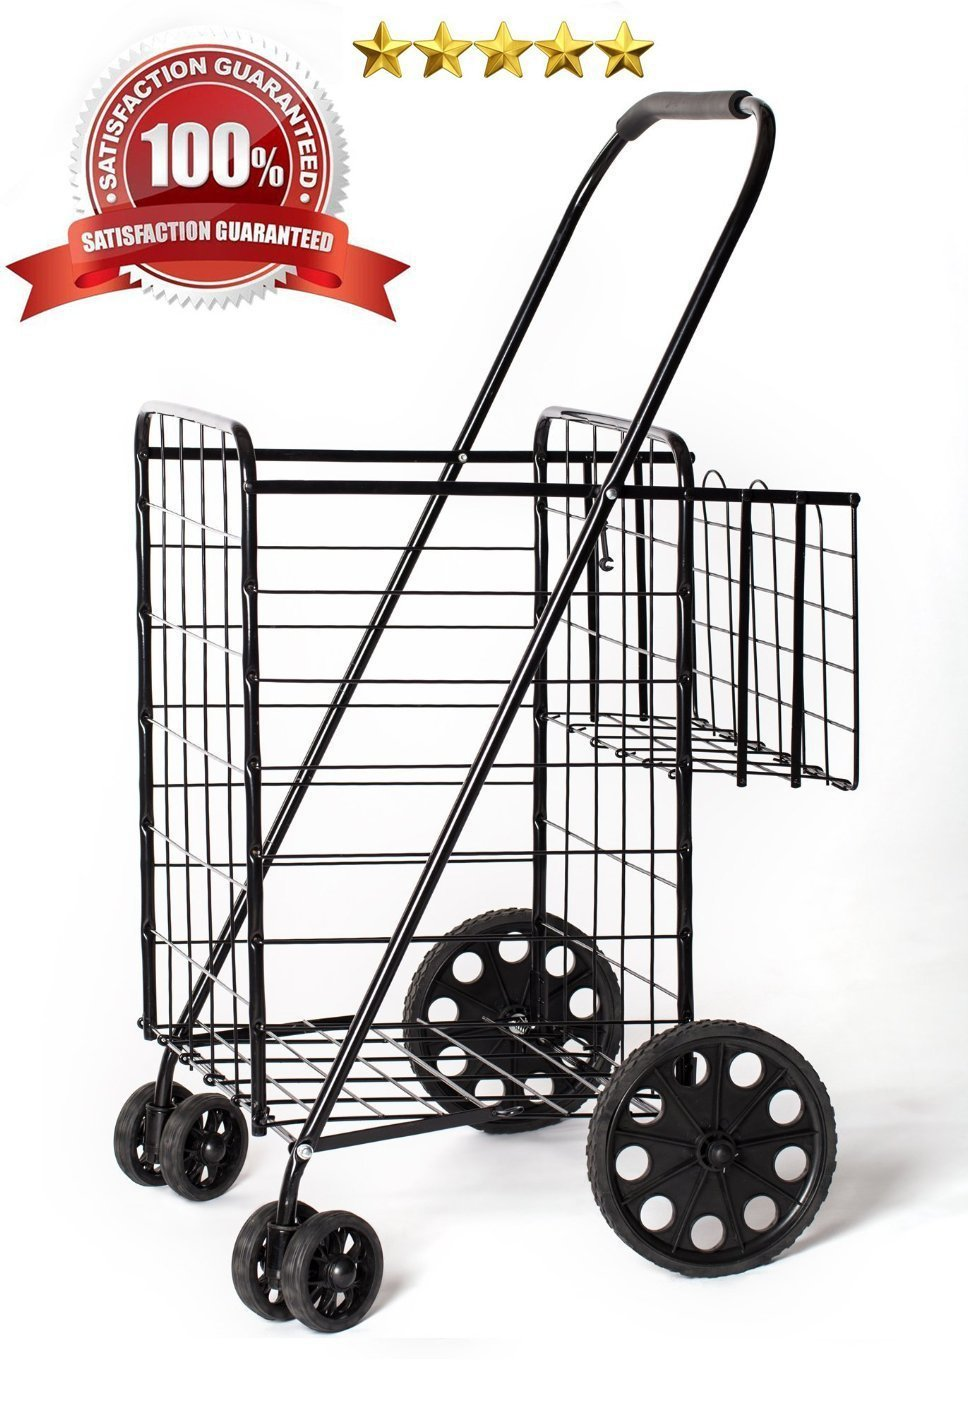 LavoHome Jumbo Size Folding Shopping Cart with Double Baskets 150 lb ...